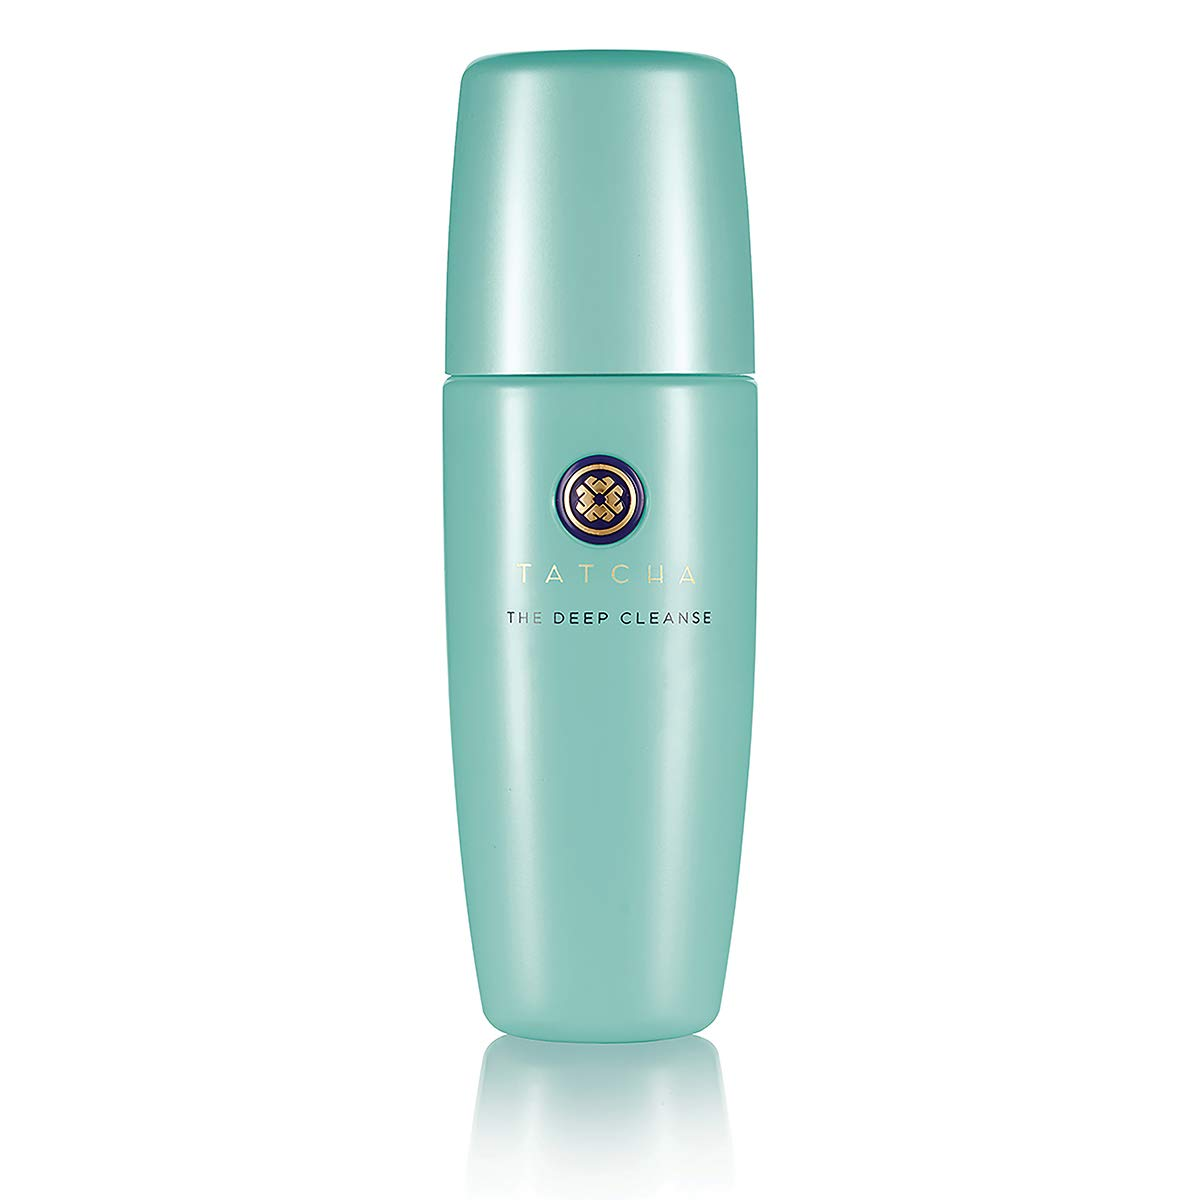 Tatcha The Deep Cleanse - 150 milliliters/ 5 ounces by TATCHA